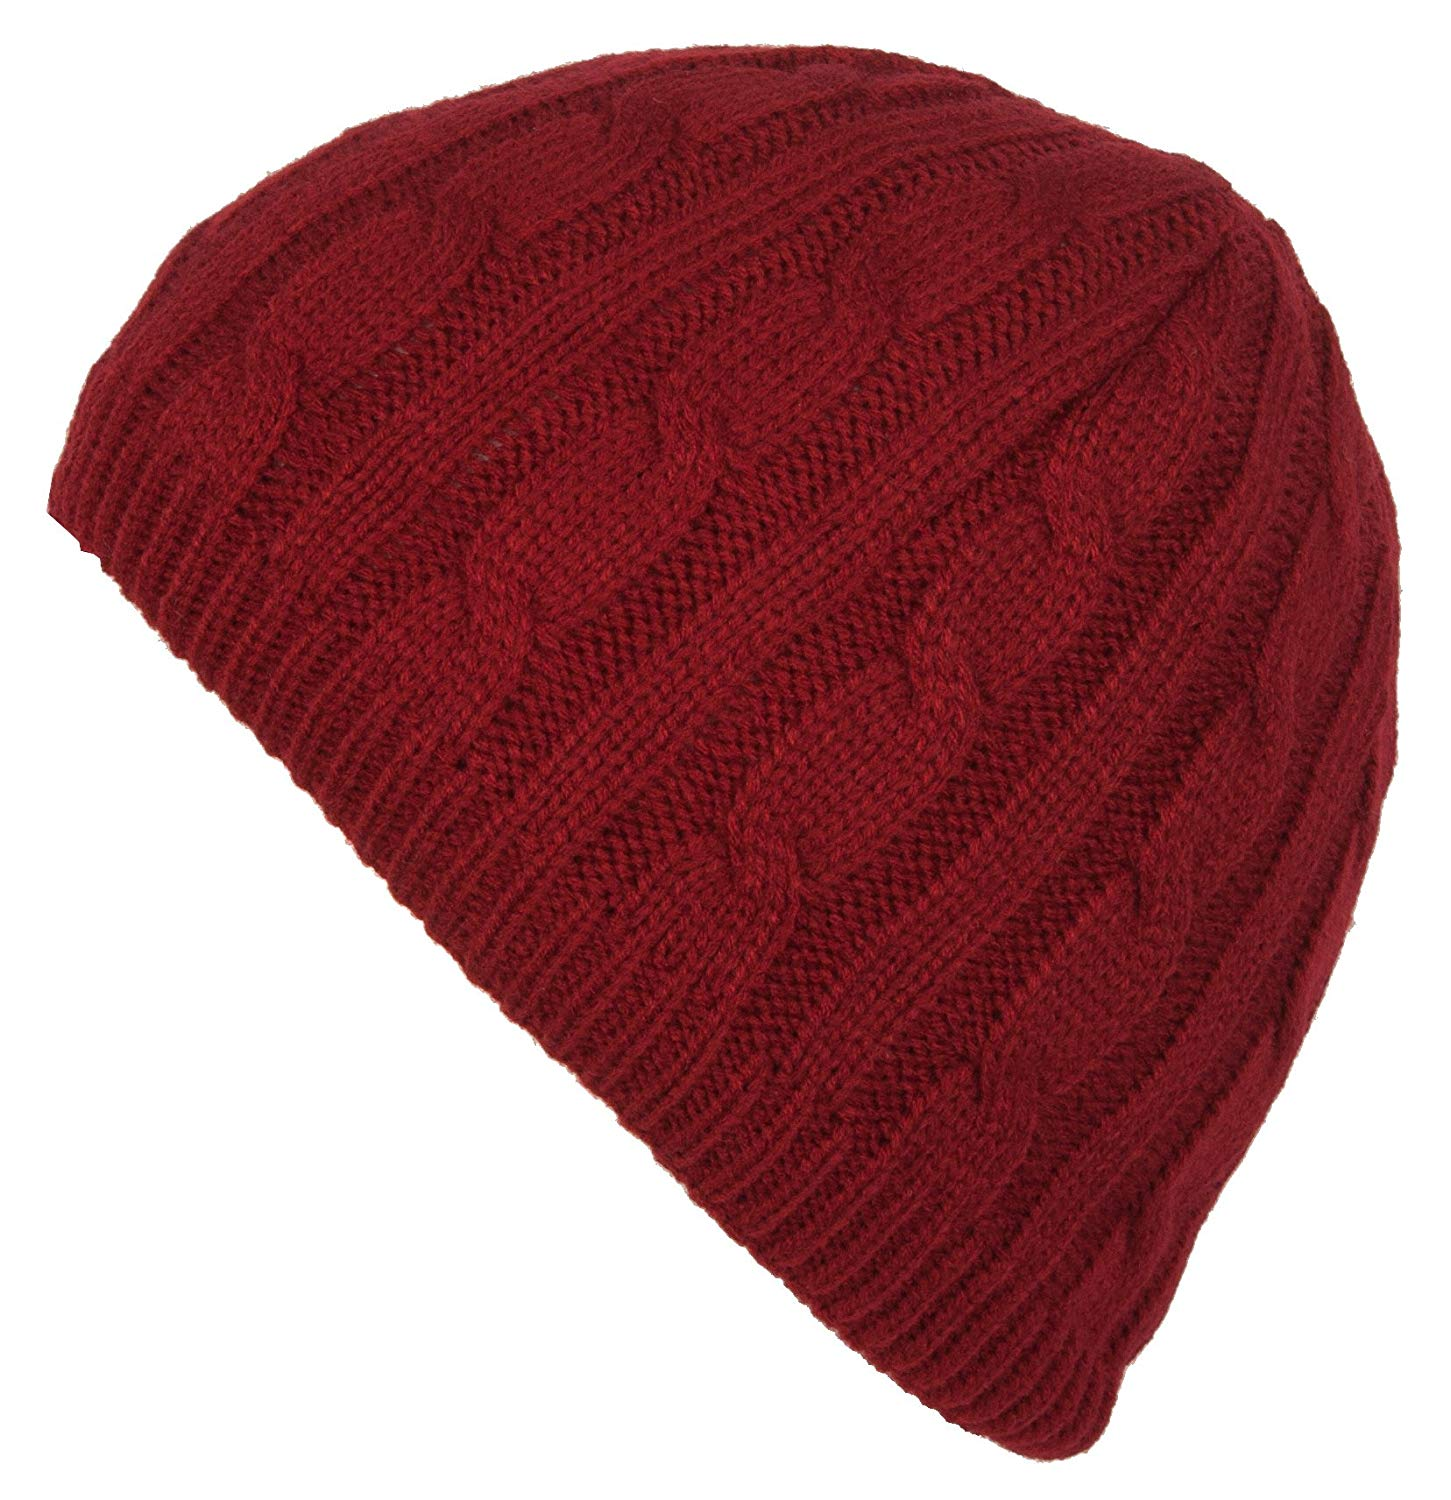 6d67a339a26 Get Quotations · DRY77 Knit Cable Pattern Beanie Hat